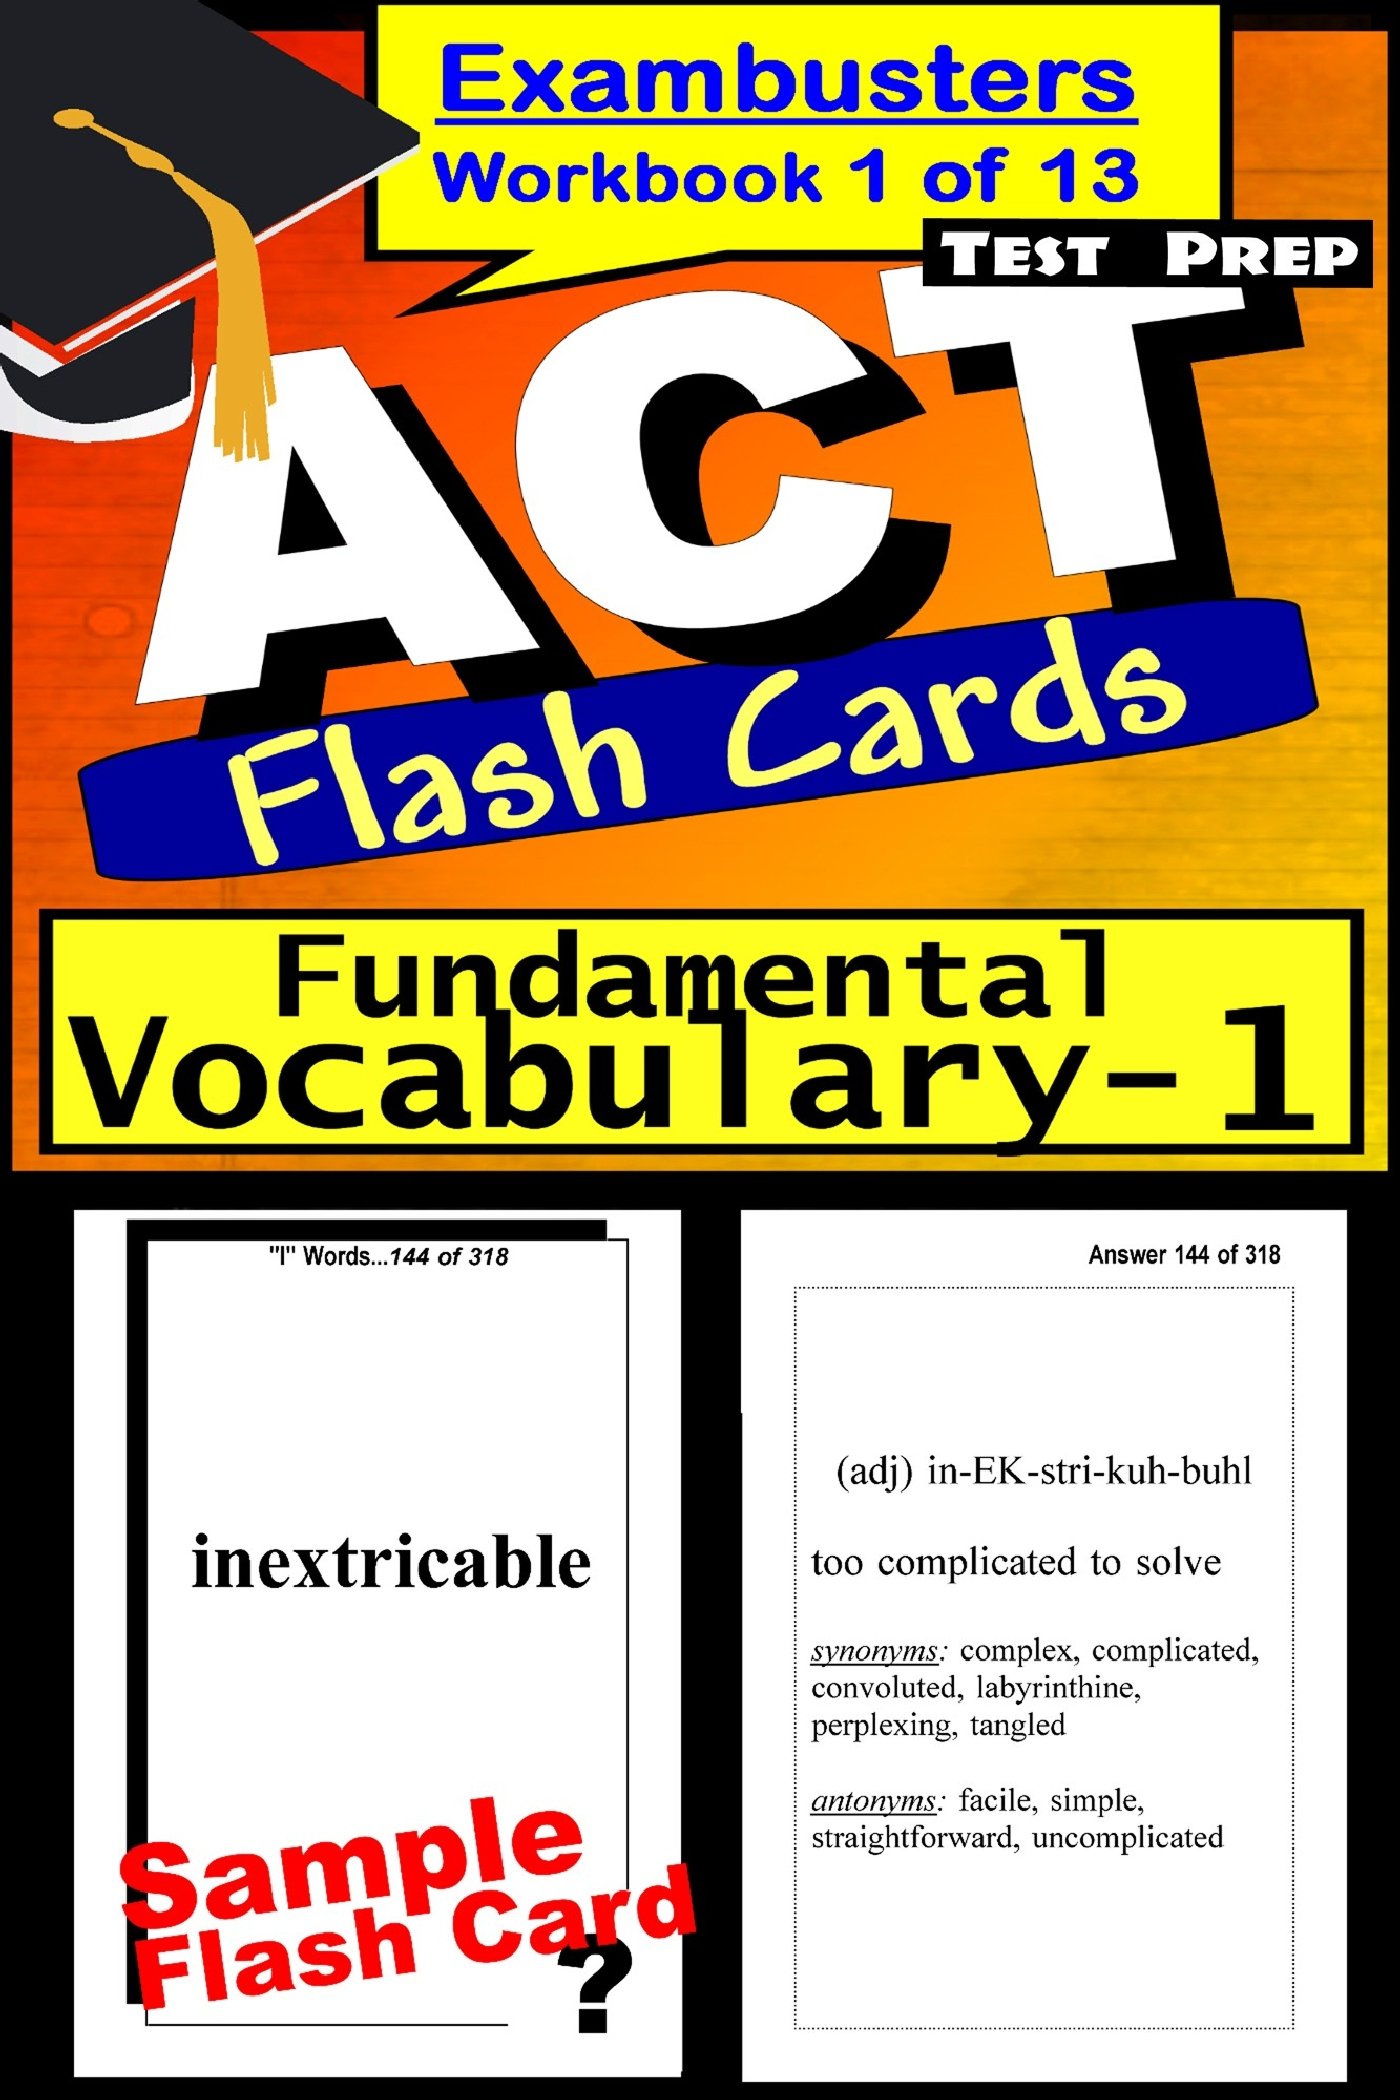 ACT Test Prep Essential Vocabulary Review--Exambusters Flash Cards--Workbook 1 of 13: ACT Exam Study Guide